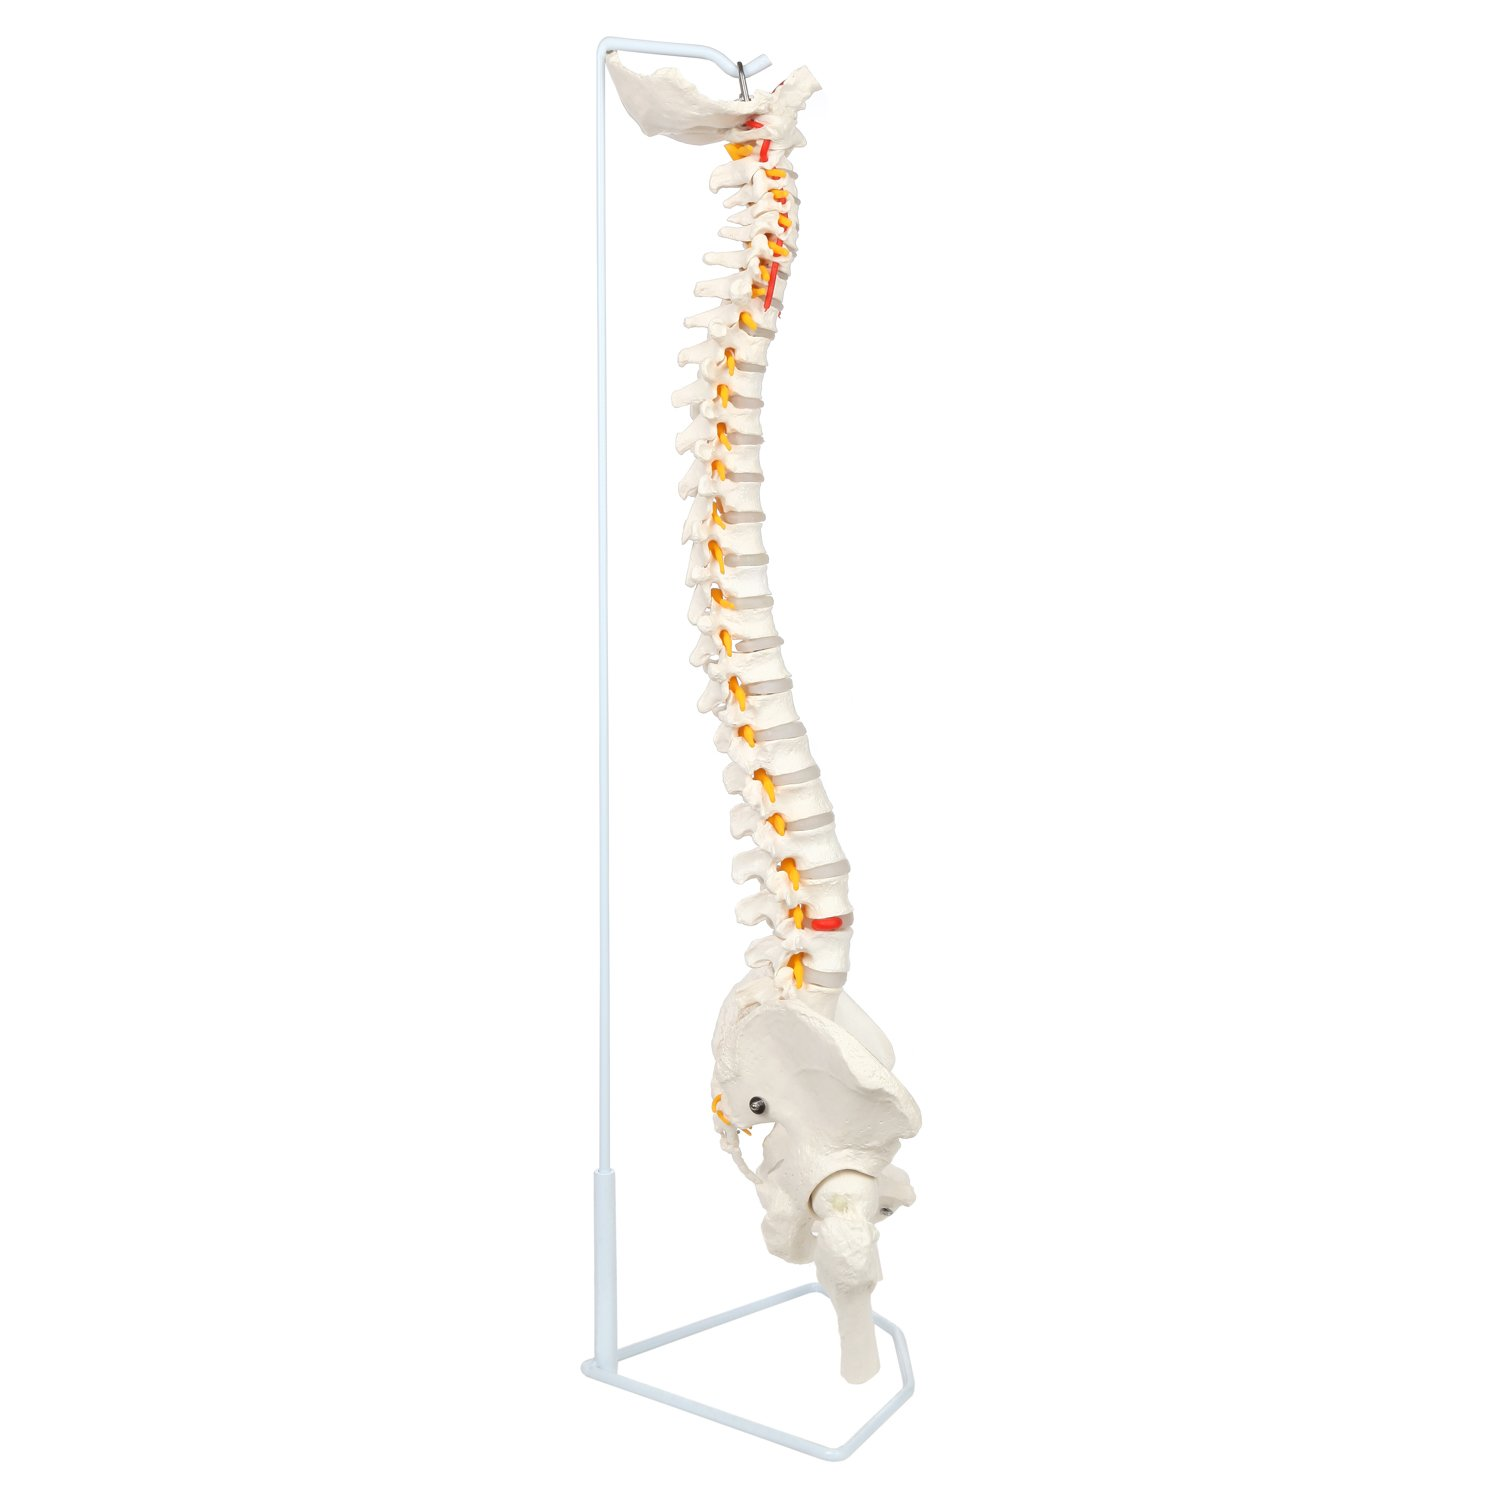 Axis Scientific Life Size Flexible Vertebral Column with Male Pelvis, Spinal Nerves and Arteries, Includes Metal Stand and 3 Year Warranty by Axis Scientific